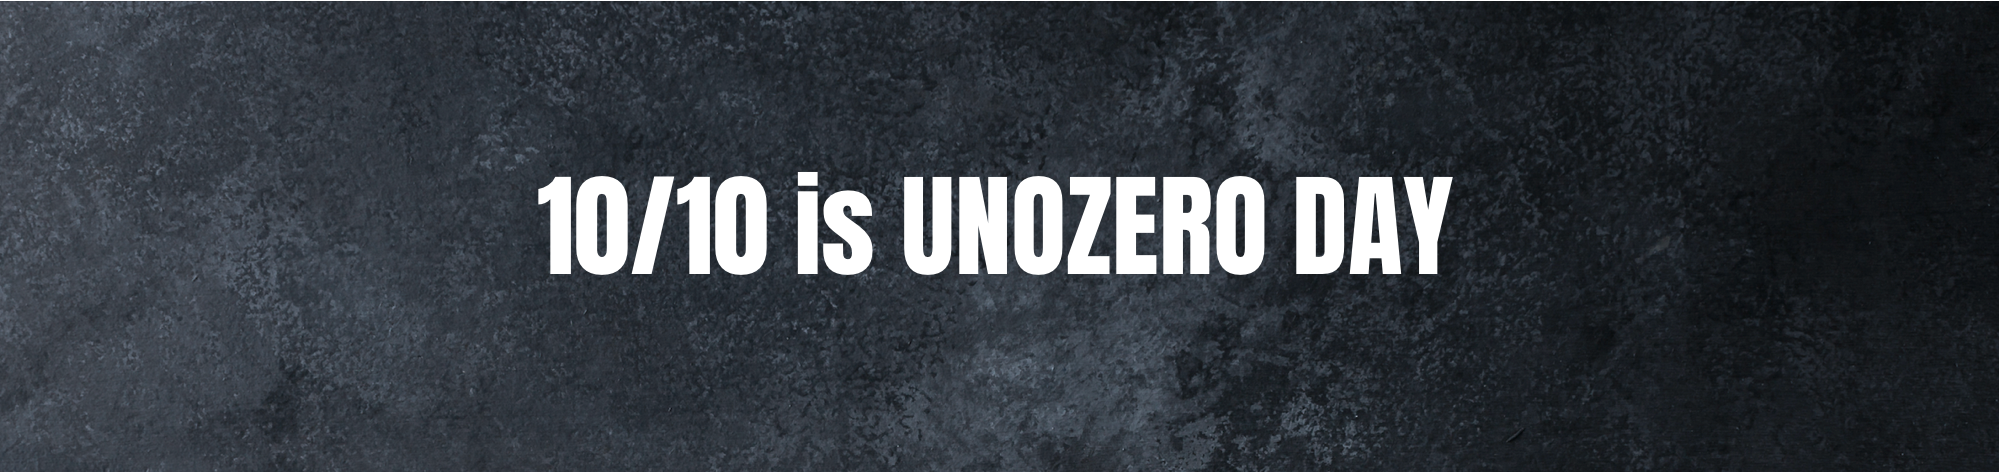 October 10th marks our second ever UNOZERO DAY